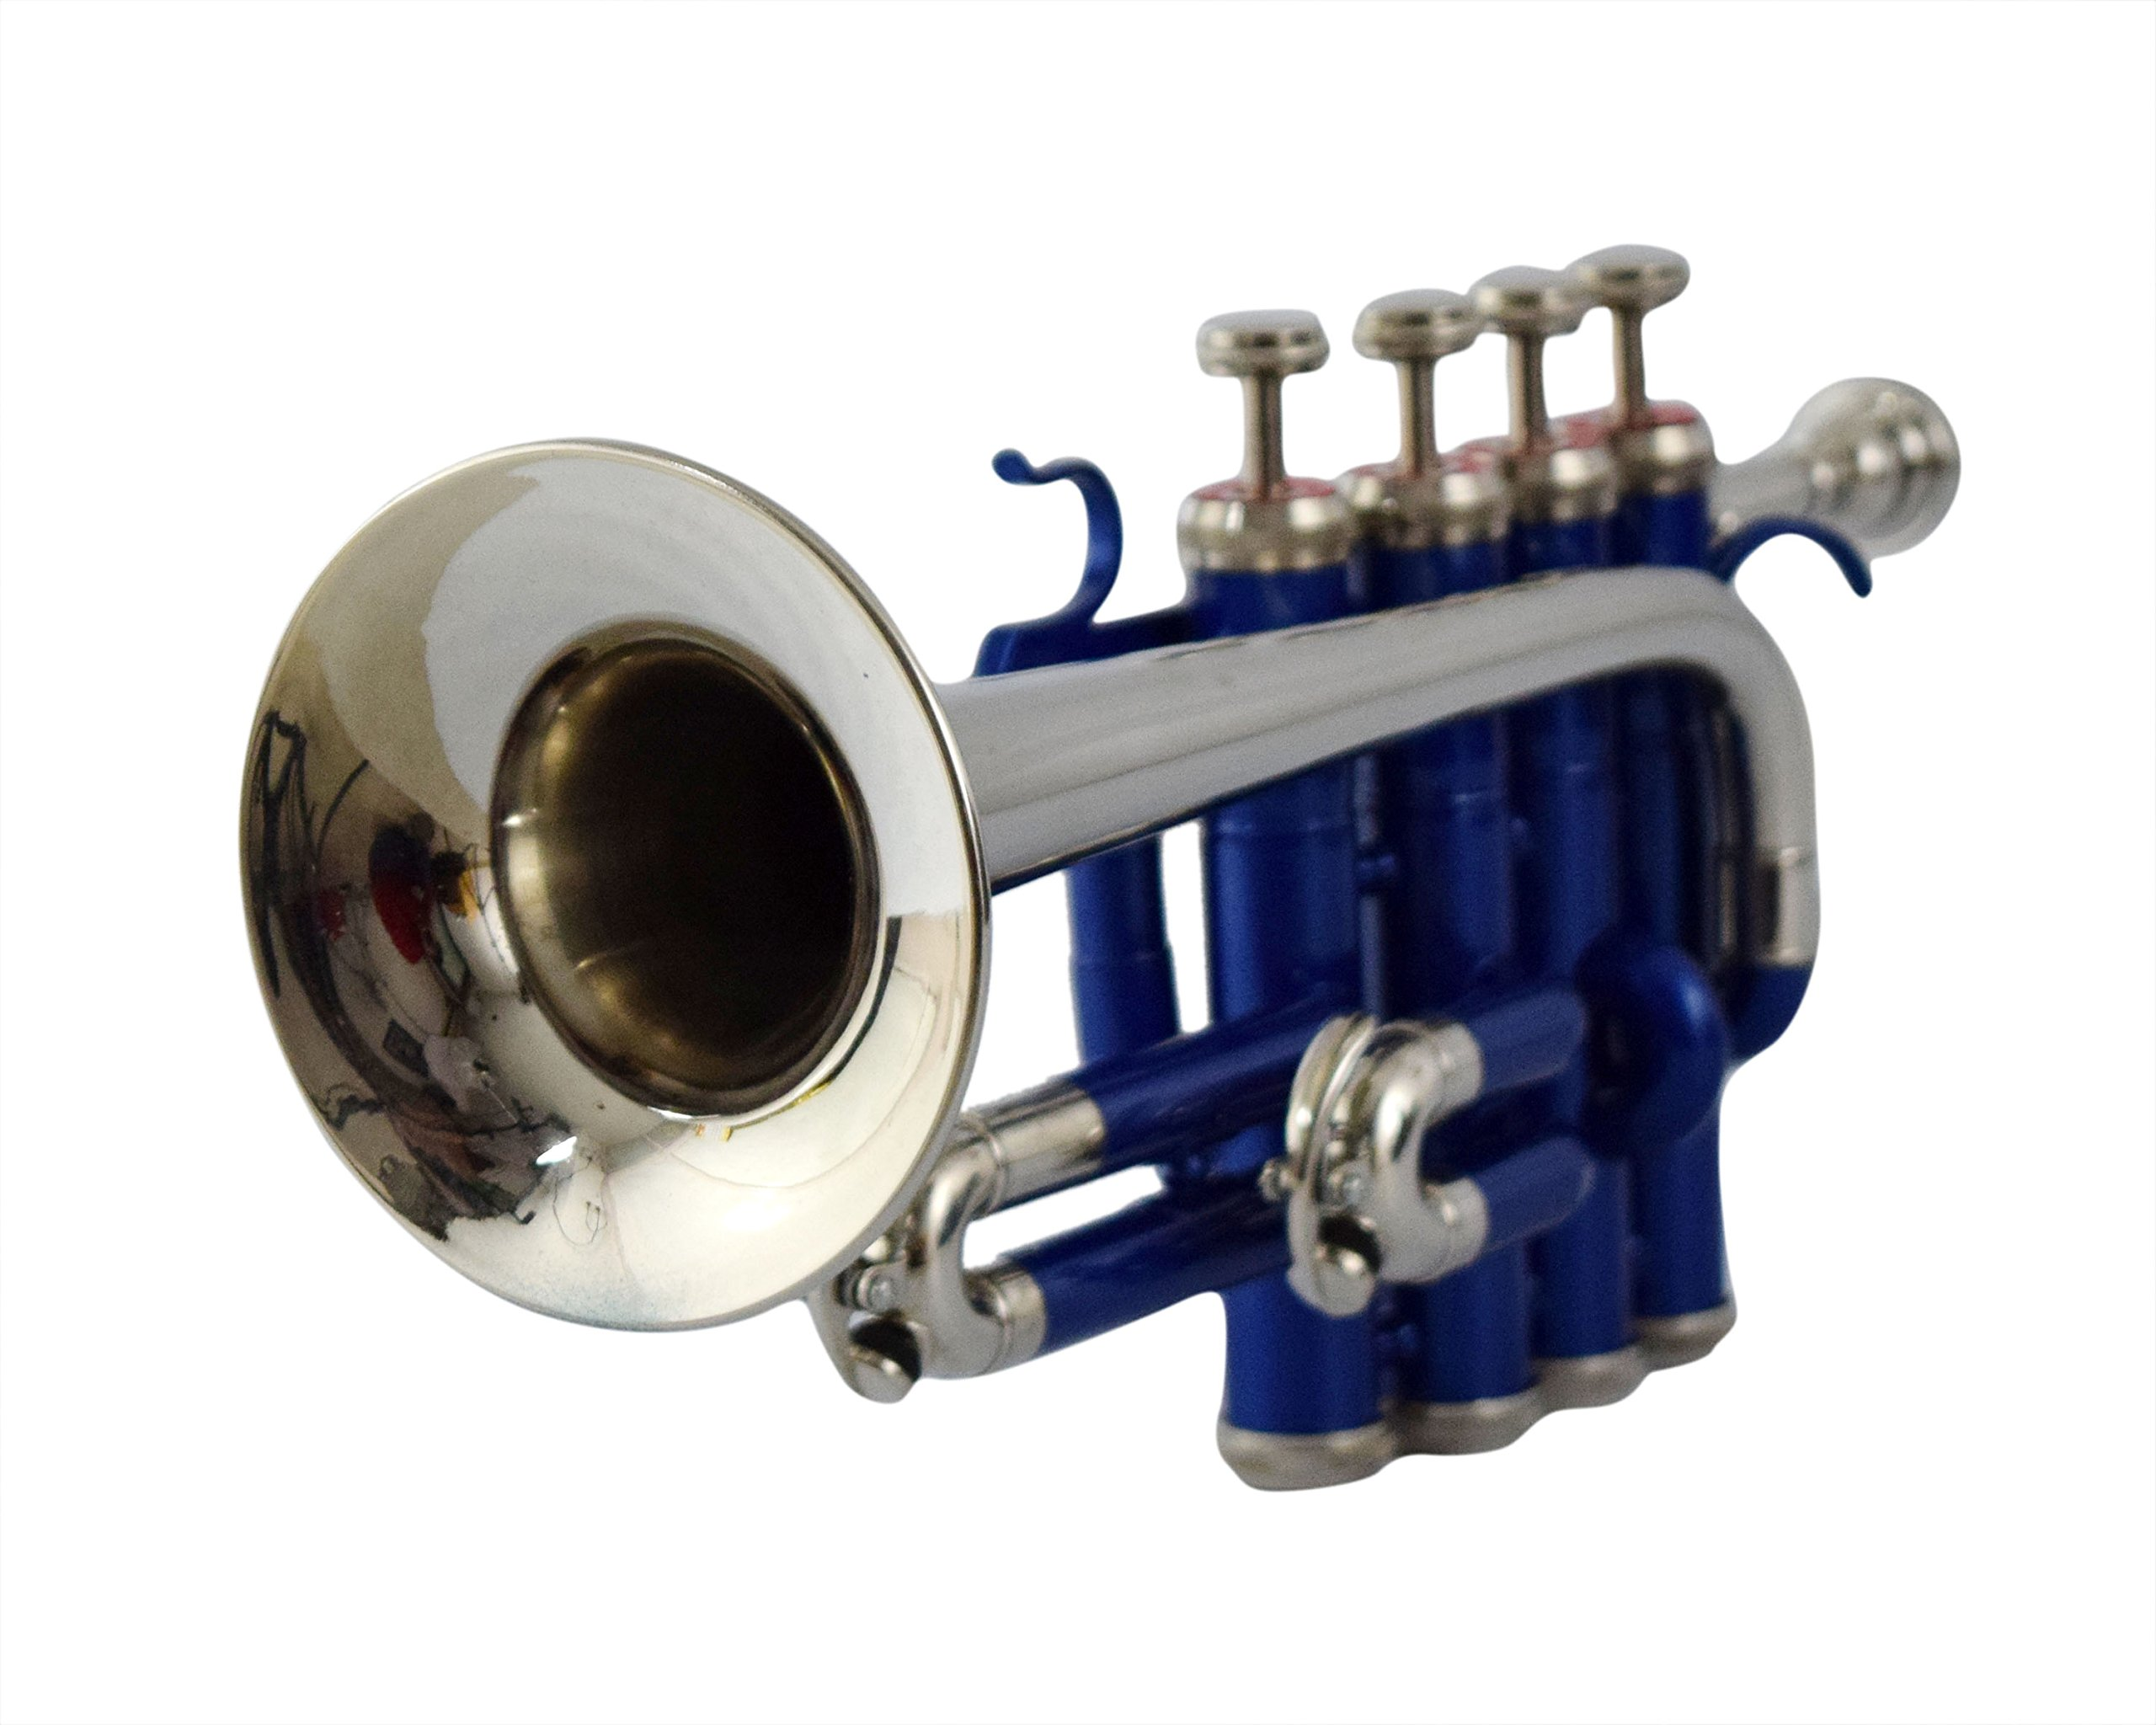 NASIR ALI PROFESSIONAL MODEL PICCOLO TRUMPET Bb PITCH BLUE COLOR + NICKEL WITH CASE AND MP